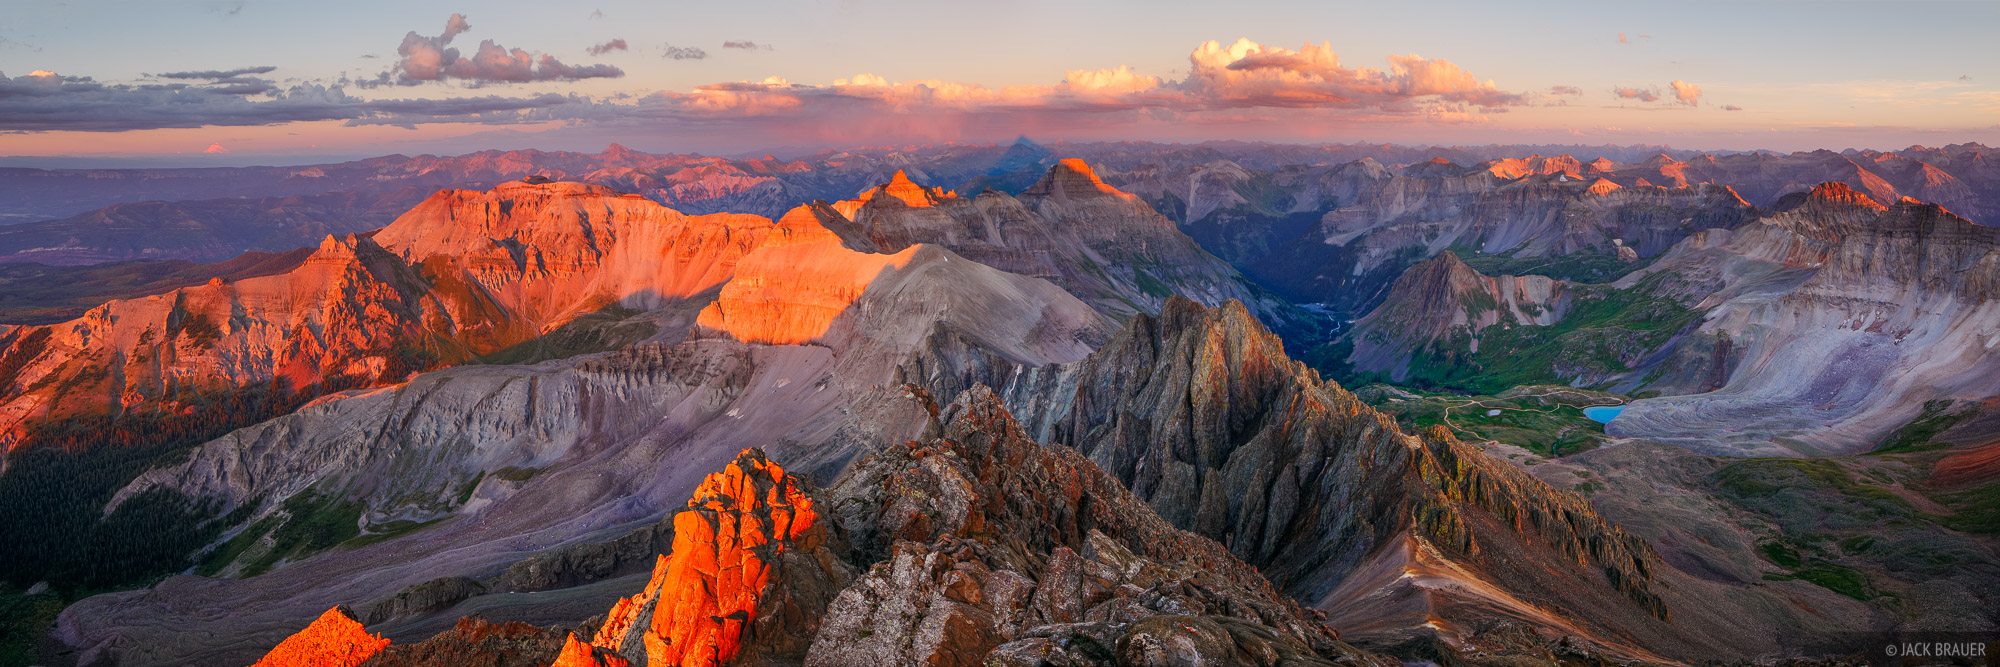 Mt. Sneffels, summit, panorama, alpenglow, San Juan Mountains, Colorado, Yankee Boy Basin